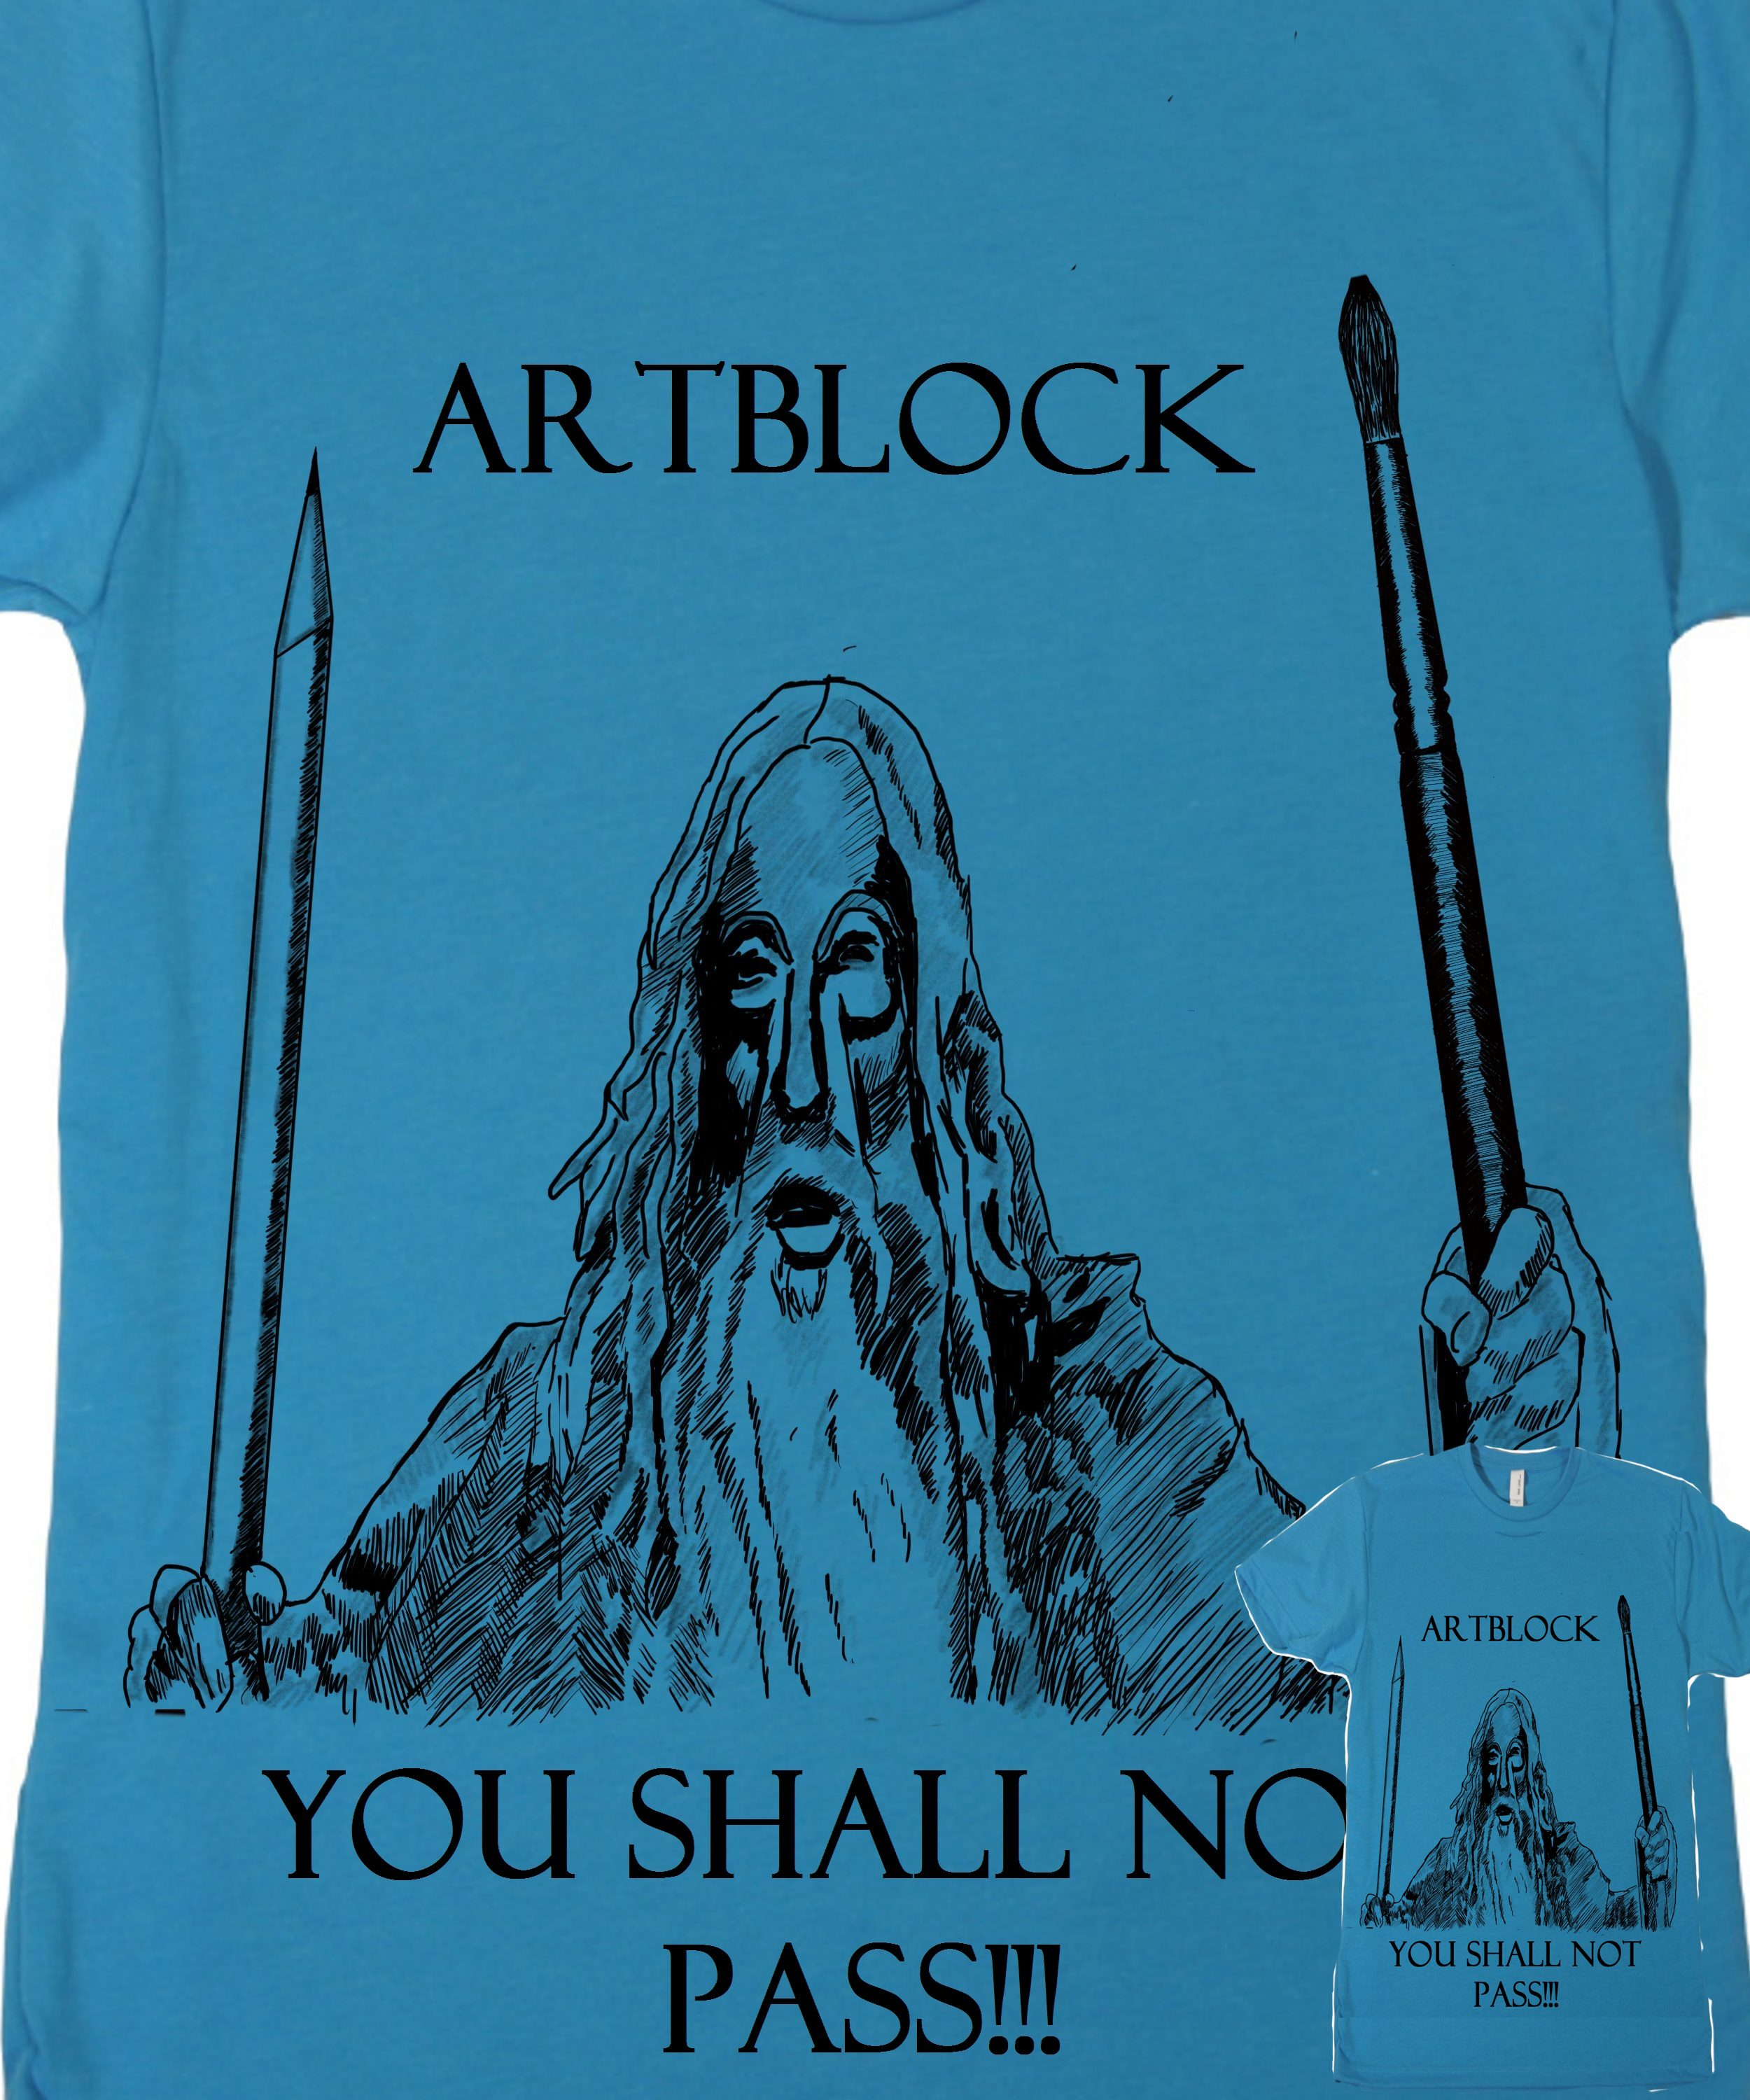 You shall not pass2